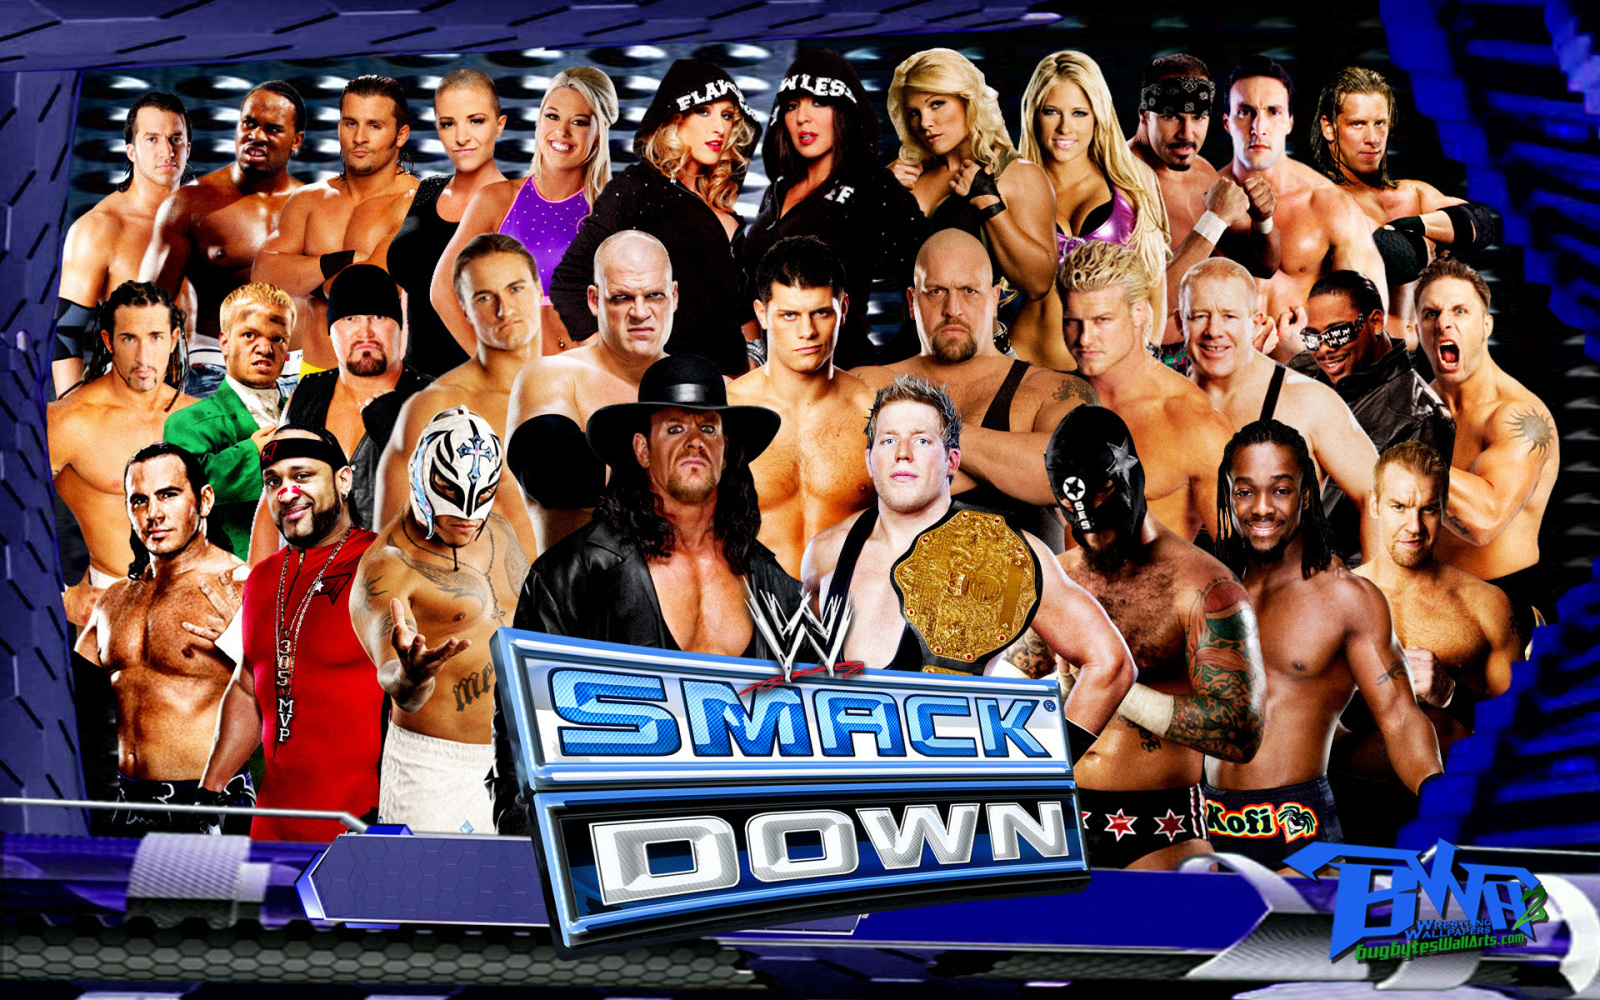 Wwe smackdown vs raw 2010 pc game free download download free pc.